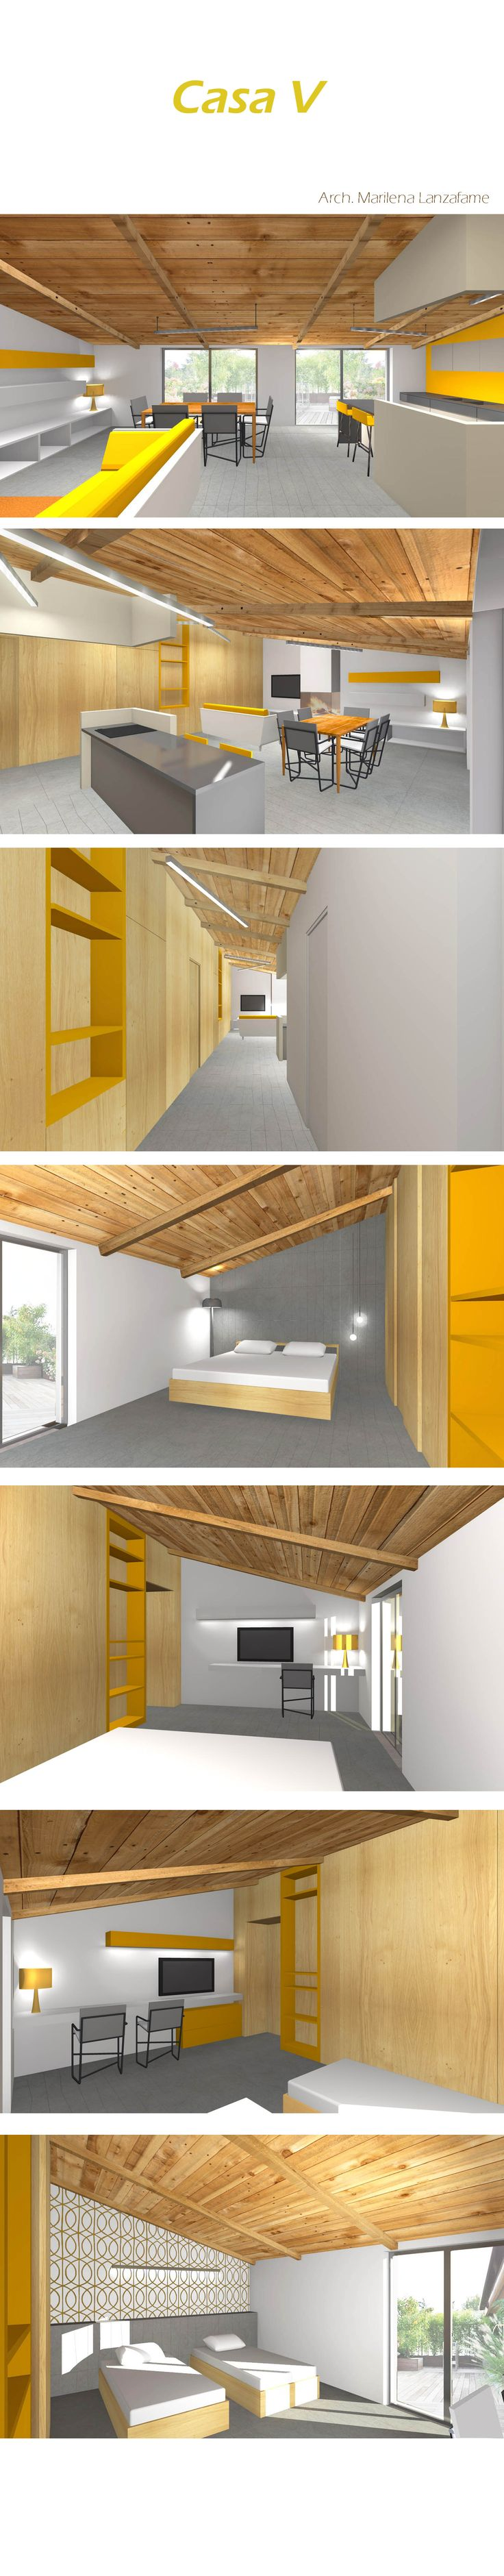 Original design of Attic in Sicily. The main colour is yellow as the sunlight. A long wood volume extend down the flat, devides the living room from the bed rooms. By Arch. Marilena Lanzafame  #architecture #interiordesign #yellow #wood #sicily #design